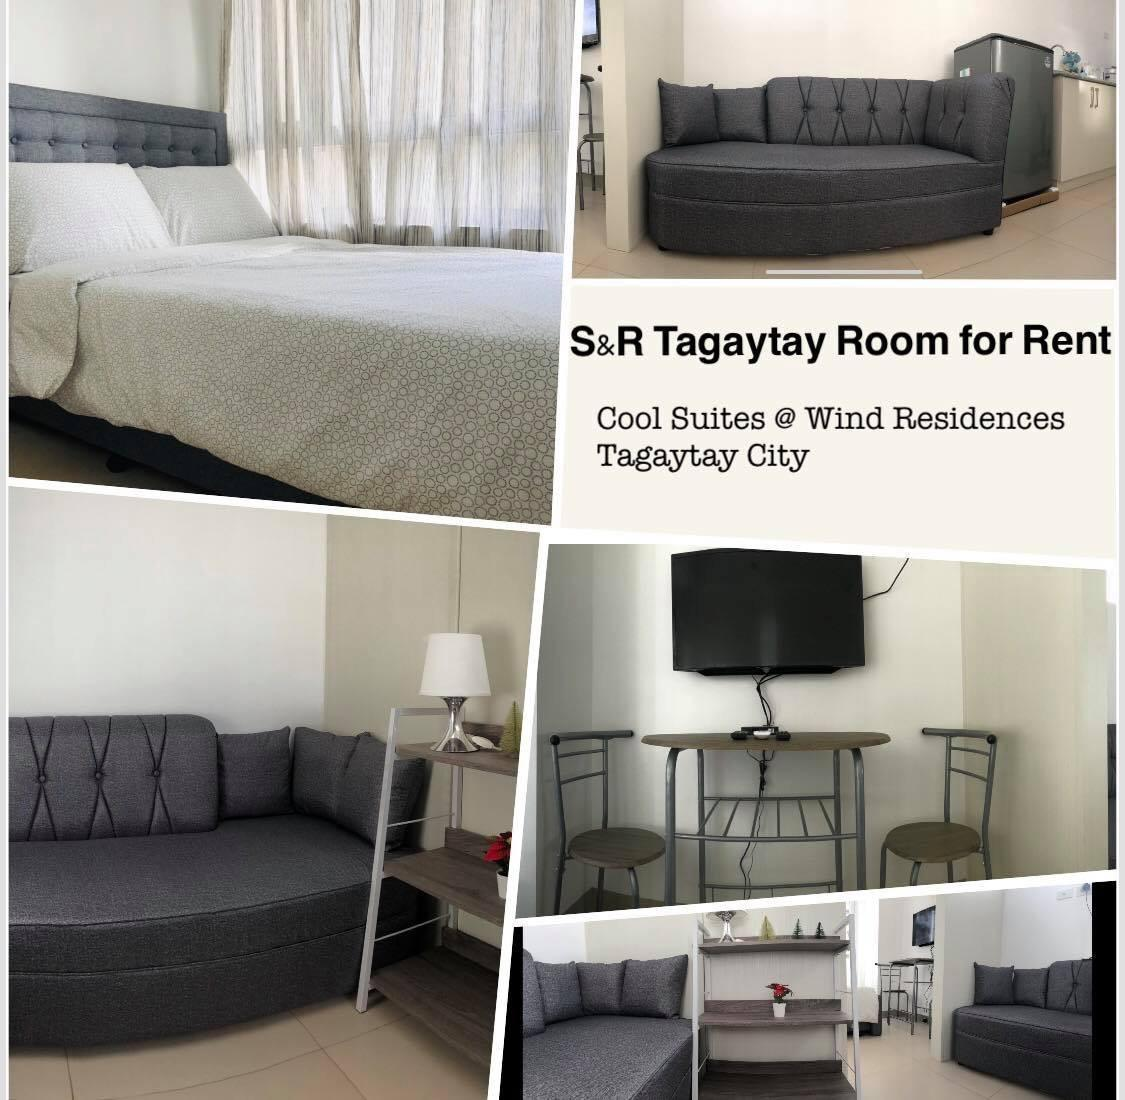 S&R Tagaytay Room for Rent